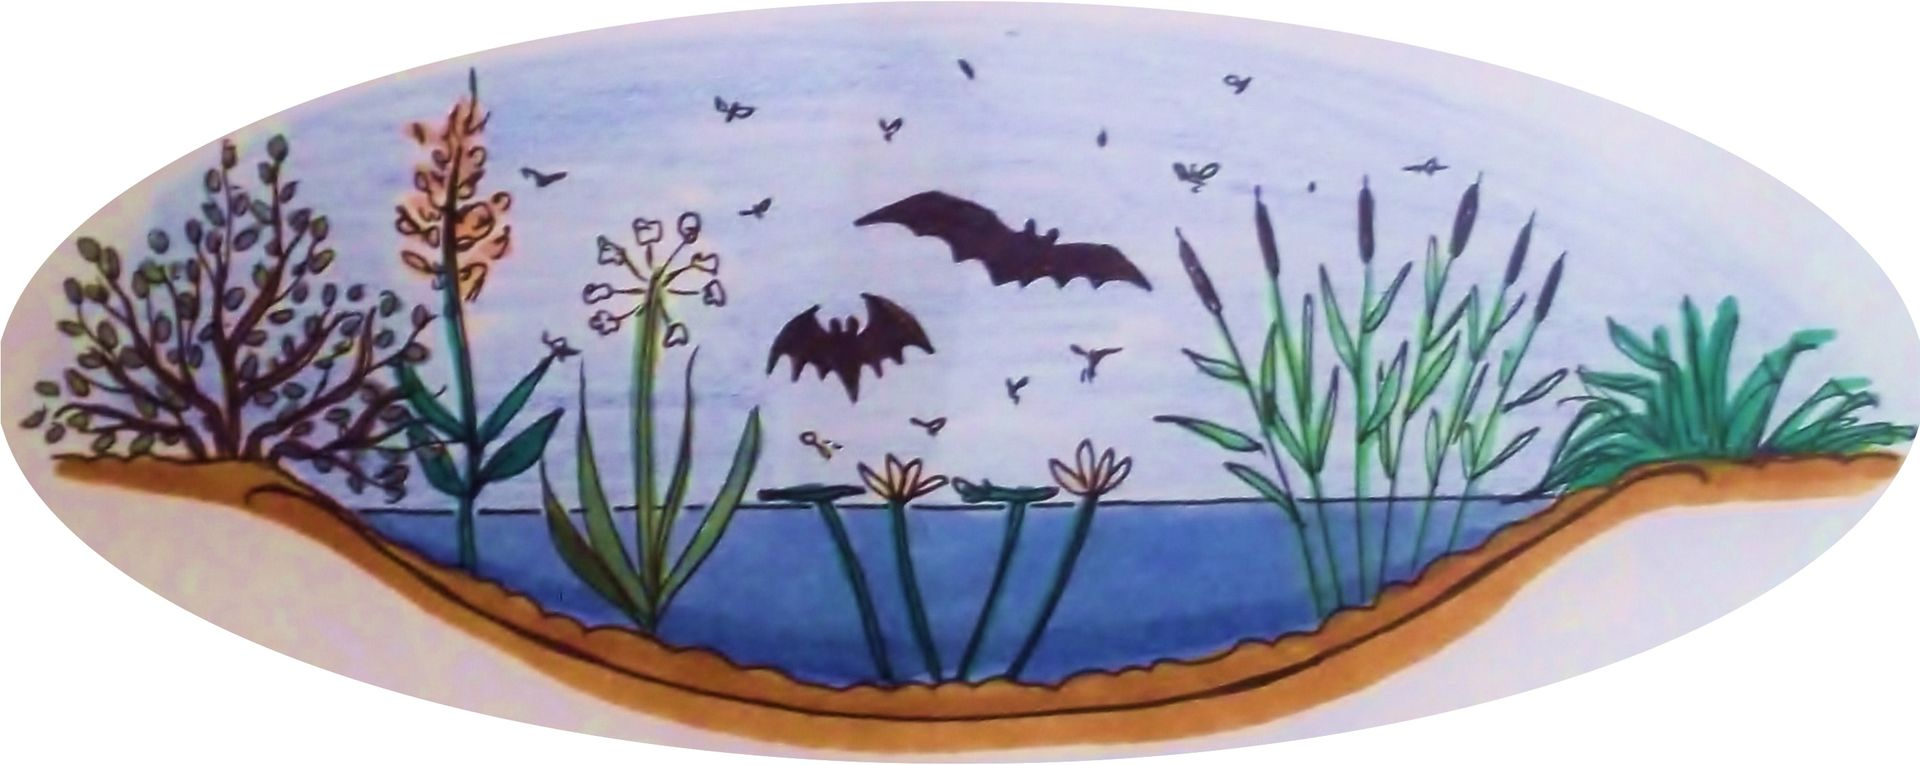 Die Zeichnung zeigt einen Gartenteich mit Wasserpflanzen und Uferbepflanzung und Fledermäuse, die über dem Teich fliegen // The drawing shows a garden pond with water plants and bank plants and bats flying over the pond